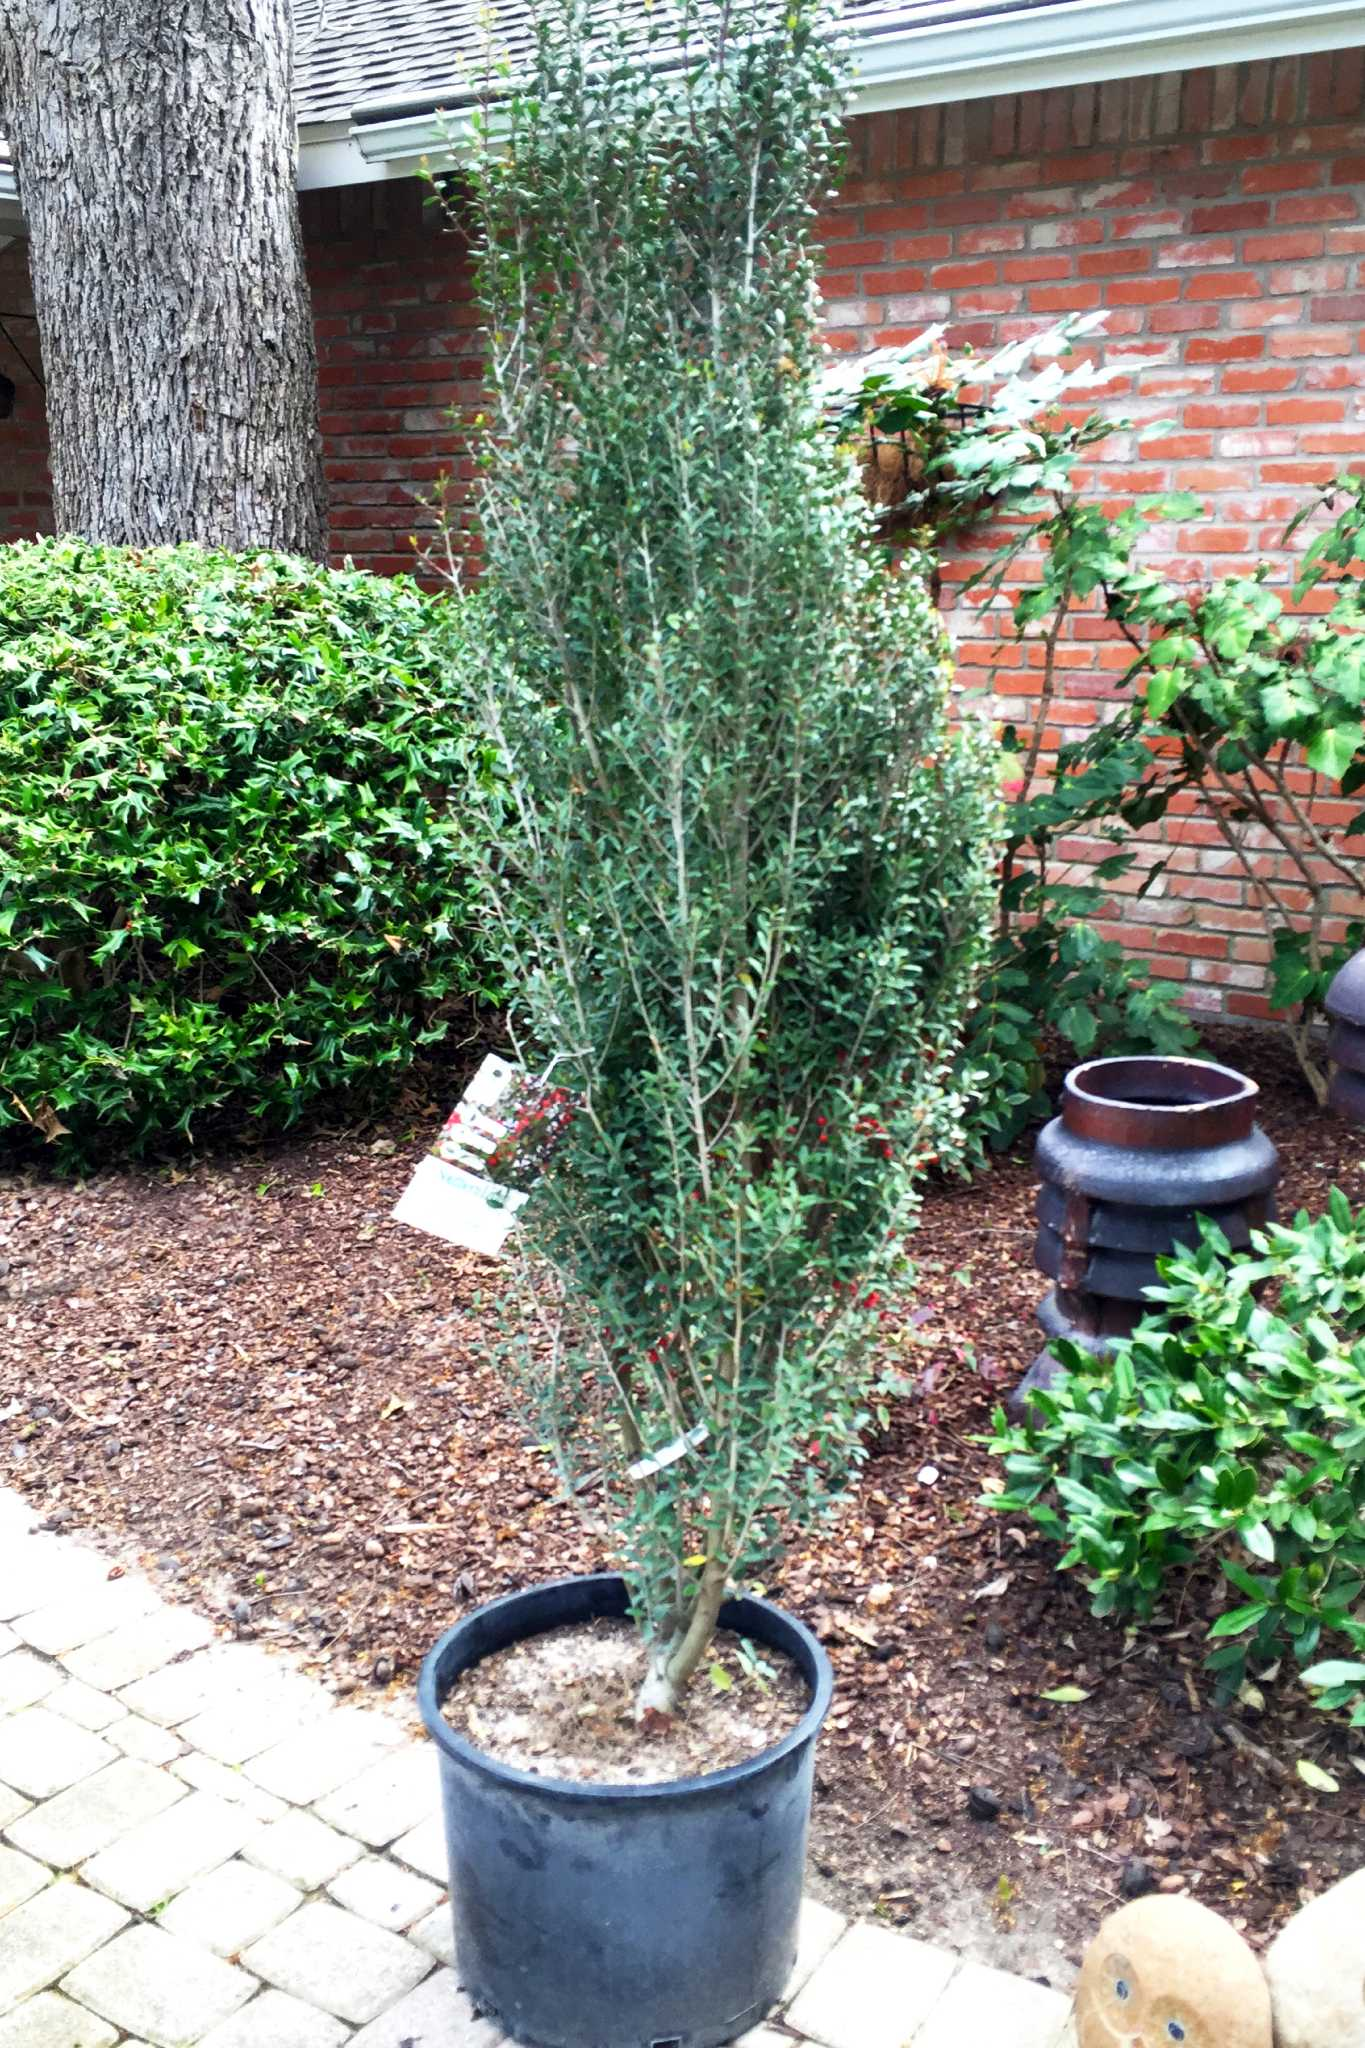 Affordable Peak Holly Promises To Stand Tall Nellie R Stevens Holly Images Nellie R Stevens Holly Pruning houzz-02 Nellie R Stevens Holly